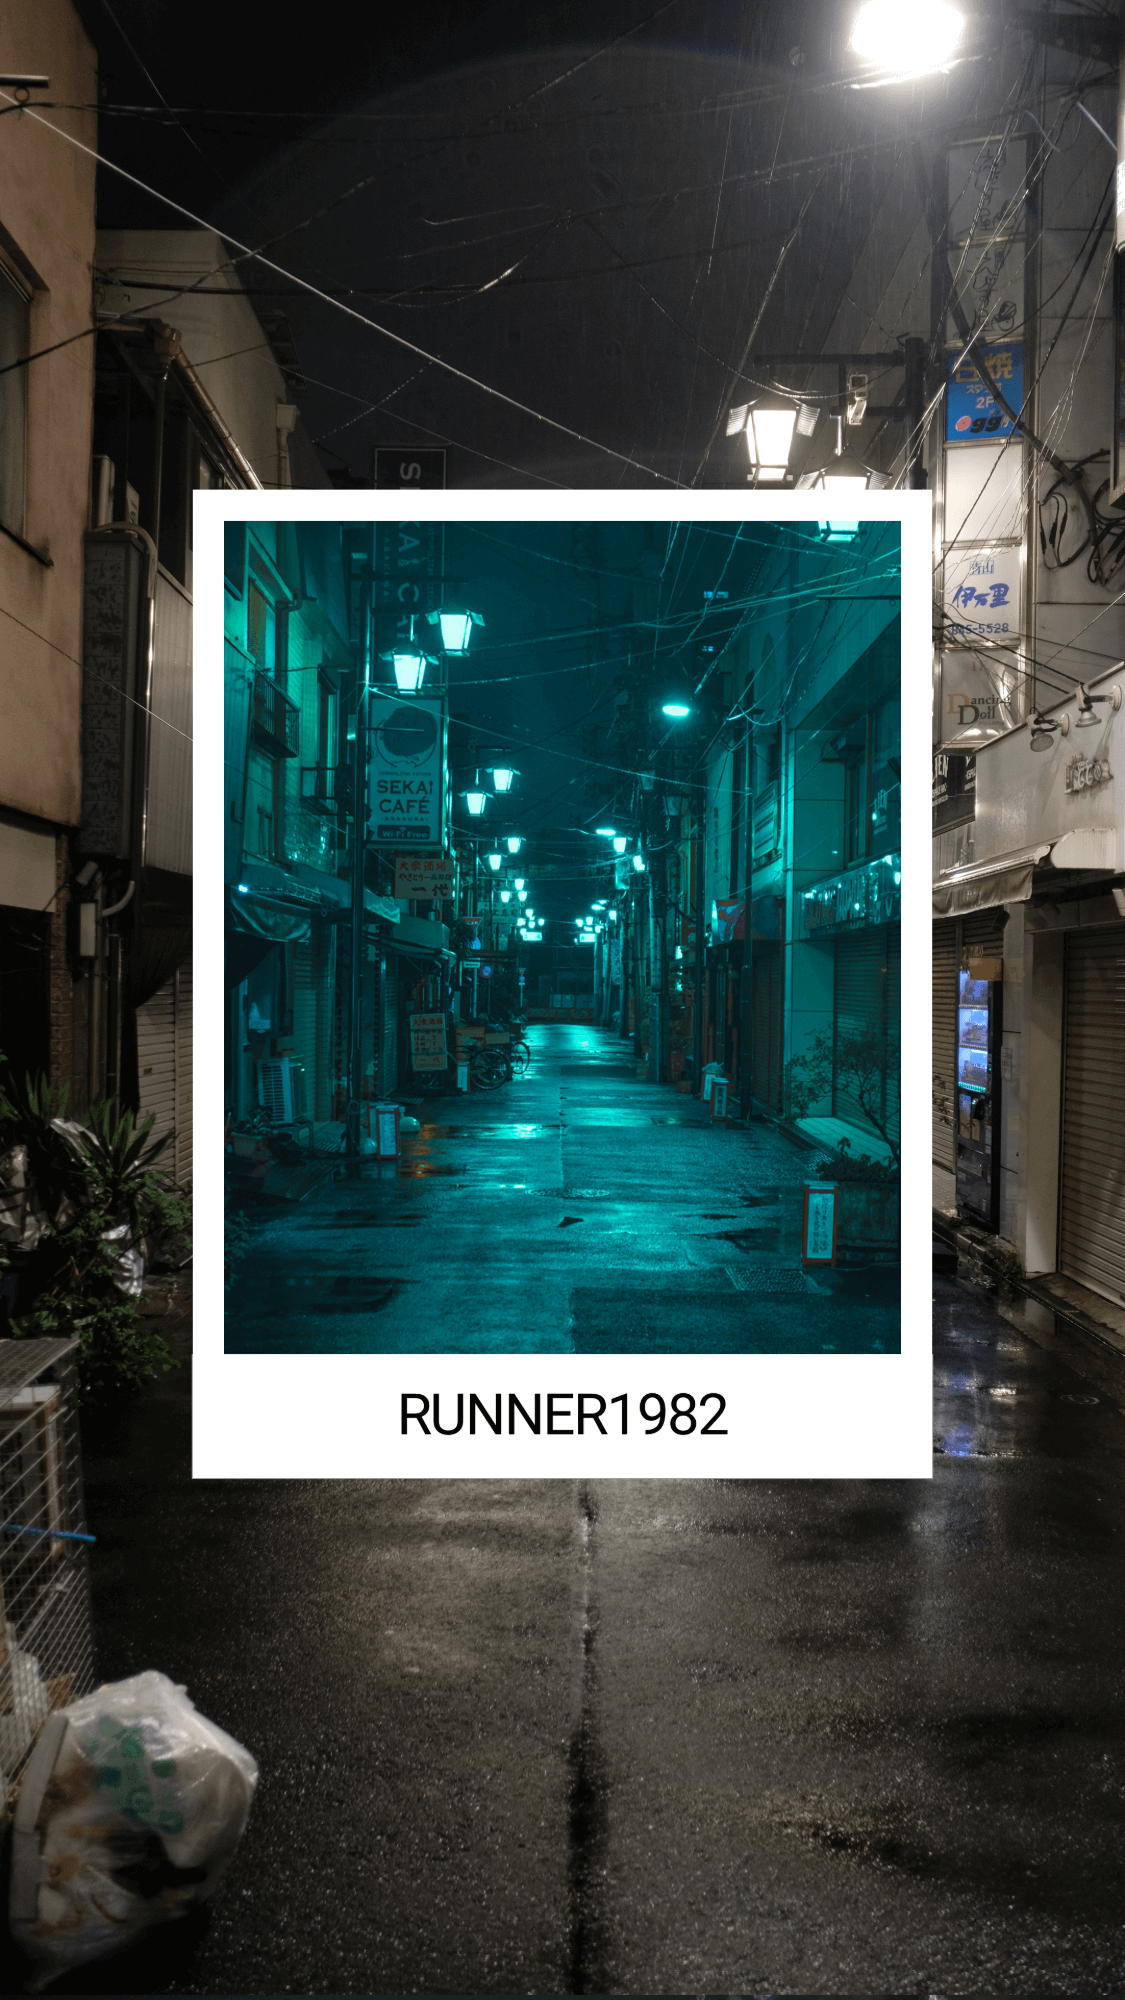 Introducing Osore Runner1982 Lightroom Preset